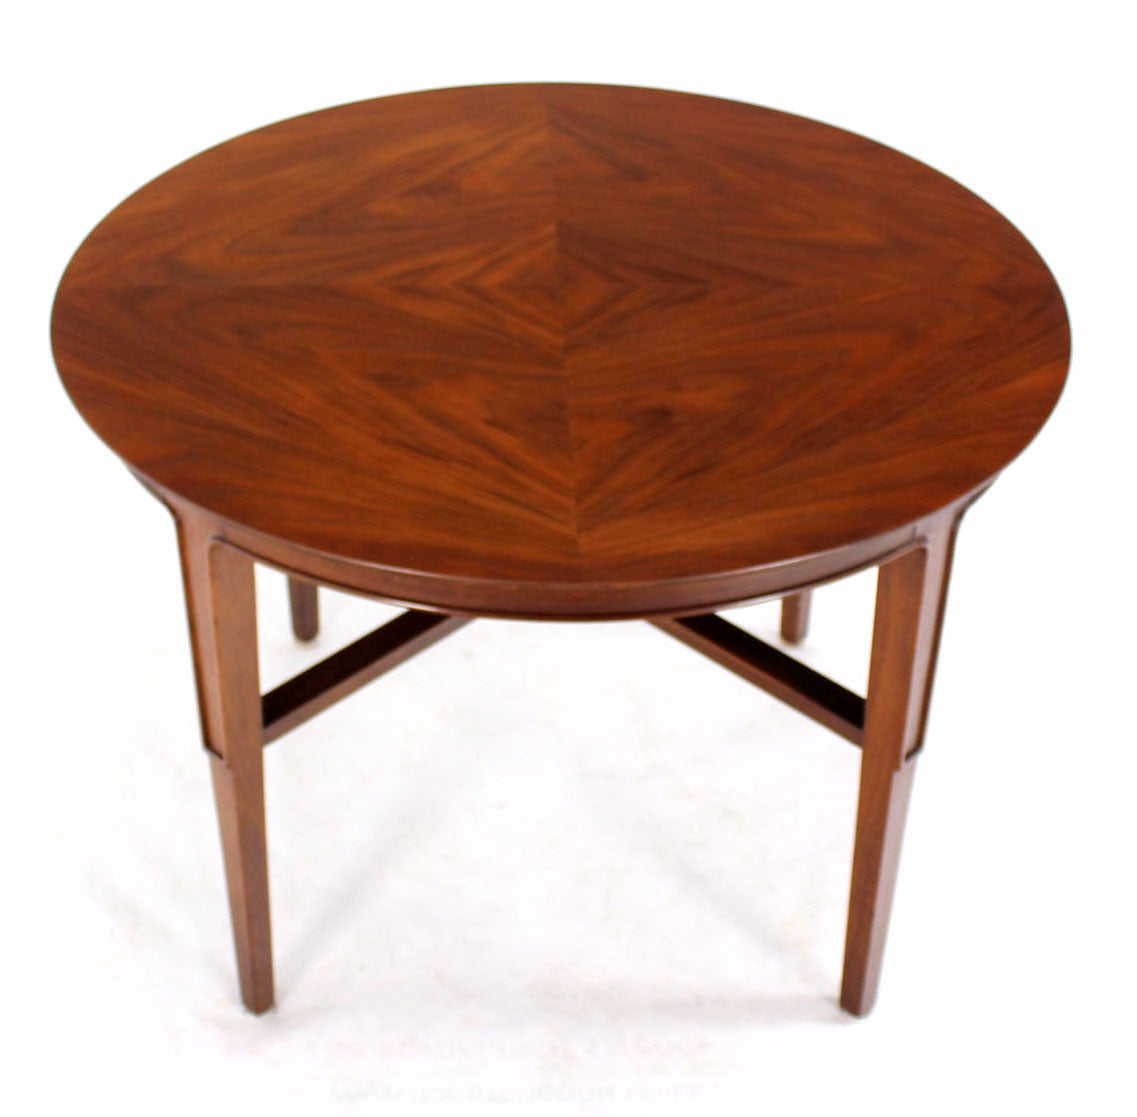 Mid Century Rose Wood Side Table Or Small Coffee Table For: John Stuart Mid-Century Modern Walnut Round Side Table At